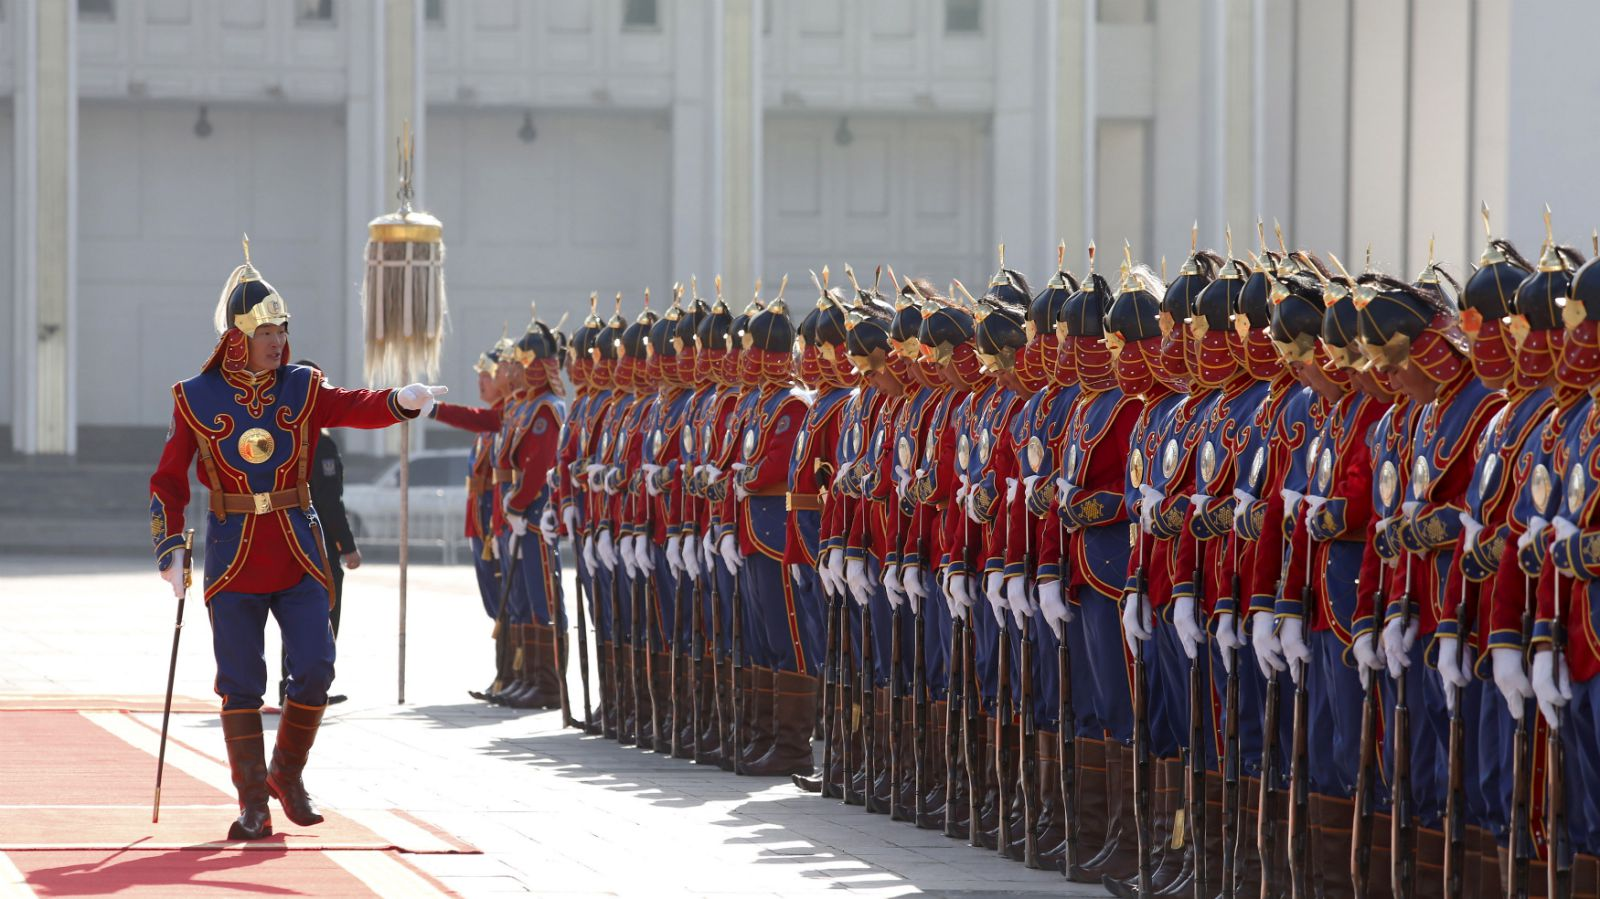 Commander (L) of an honour guards gestures as he prepares his troops before a welcoming ceremony for the visiting Bulgarian President Rosen Plevneliev (not pictured) outside the national parliament building at Sukhbaatar square, in Ulan Bator, Mongolia, May 11, 2015.